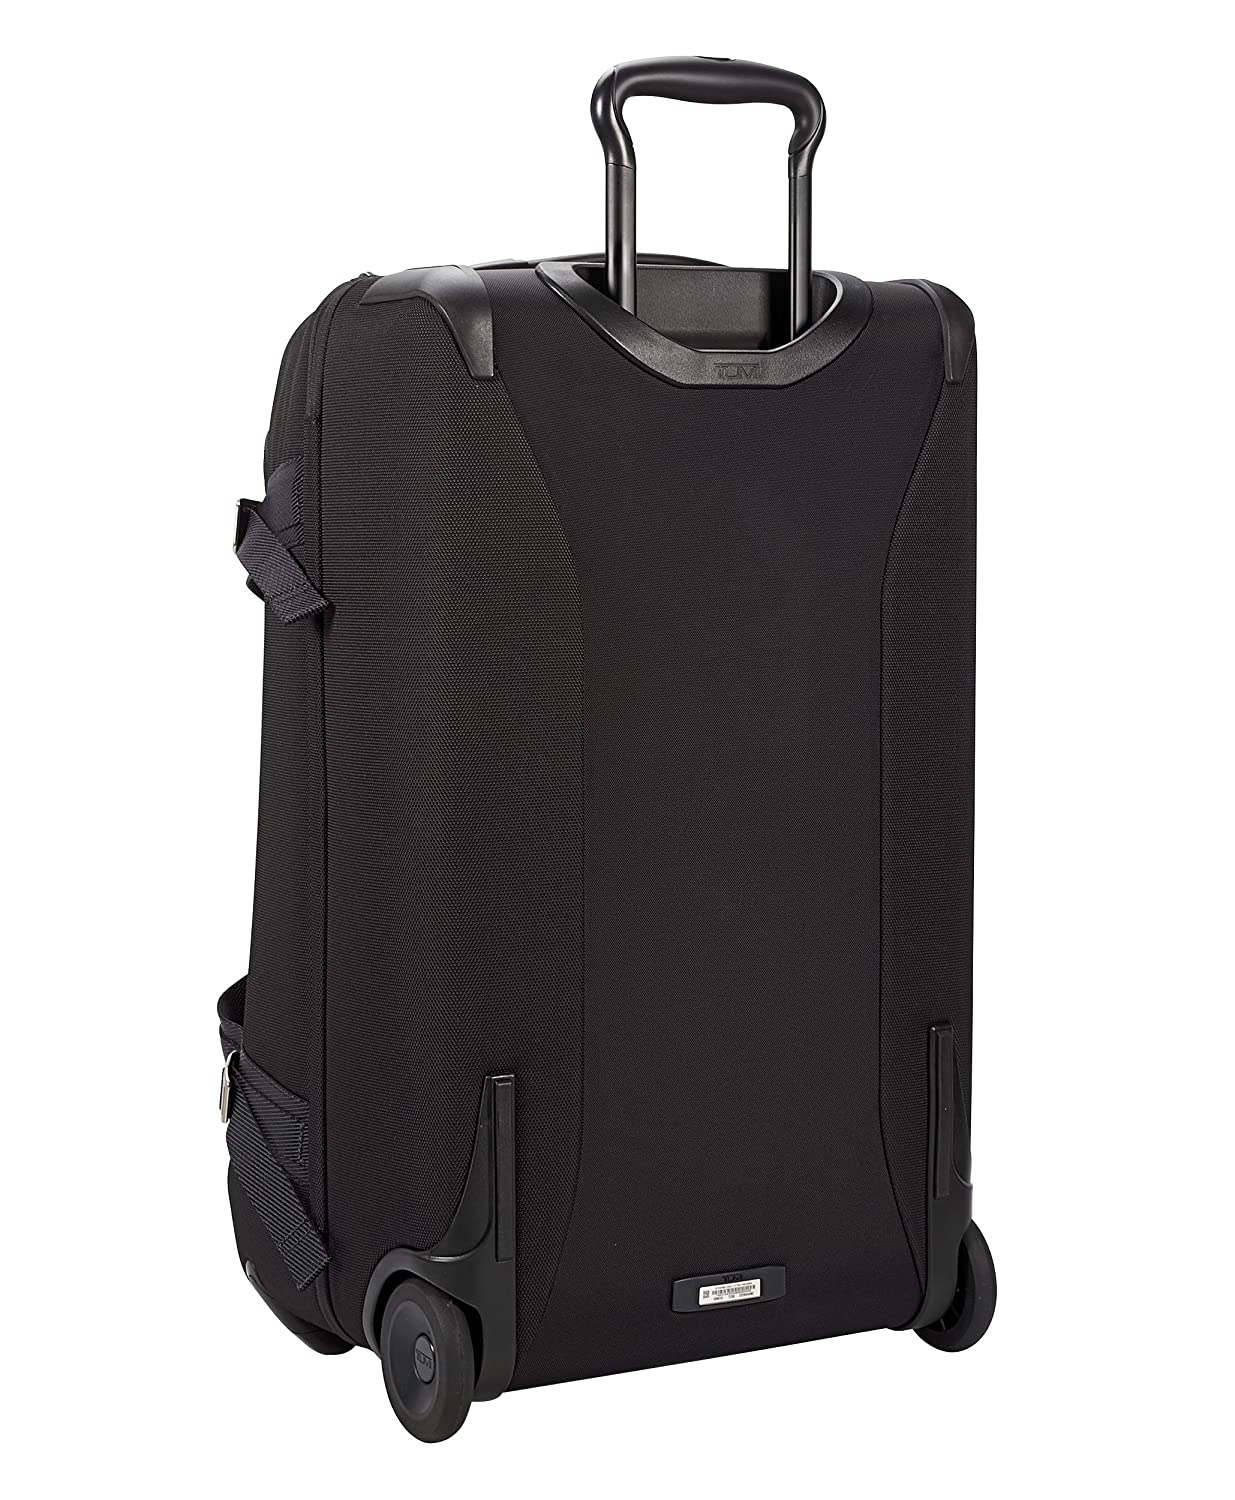 a4f238d6a Amazon.com | TUMI - Merge Wheeled Duffel Packing Case Medium Suitcase -  Rolling luggage for Men and Women - Black Contrast | Luggage